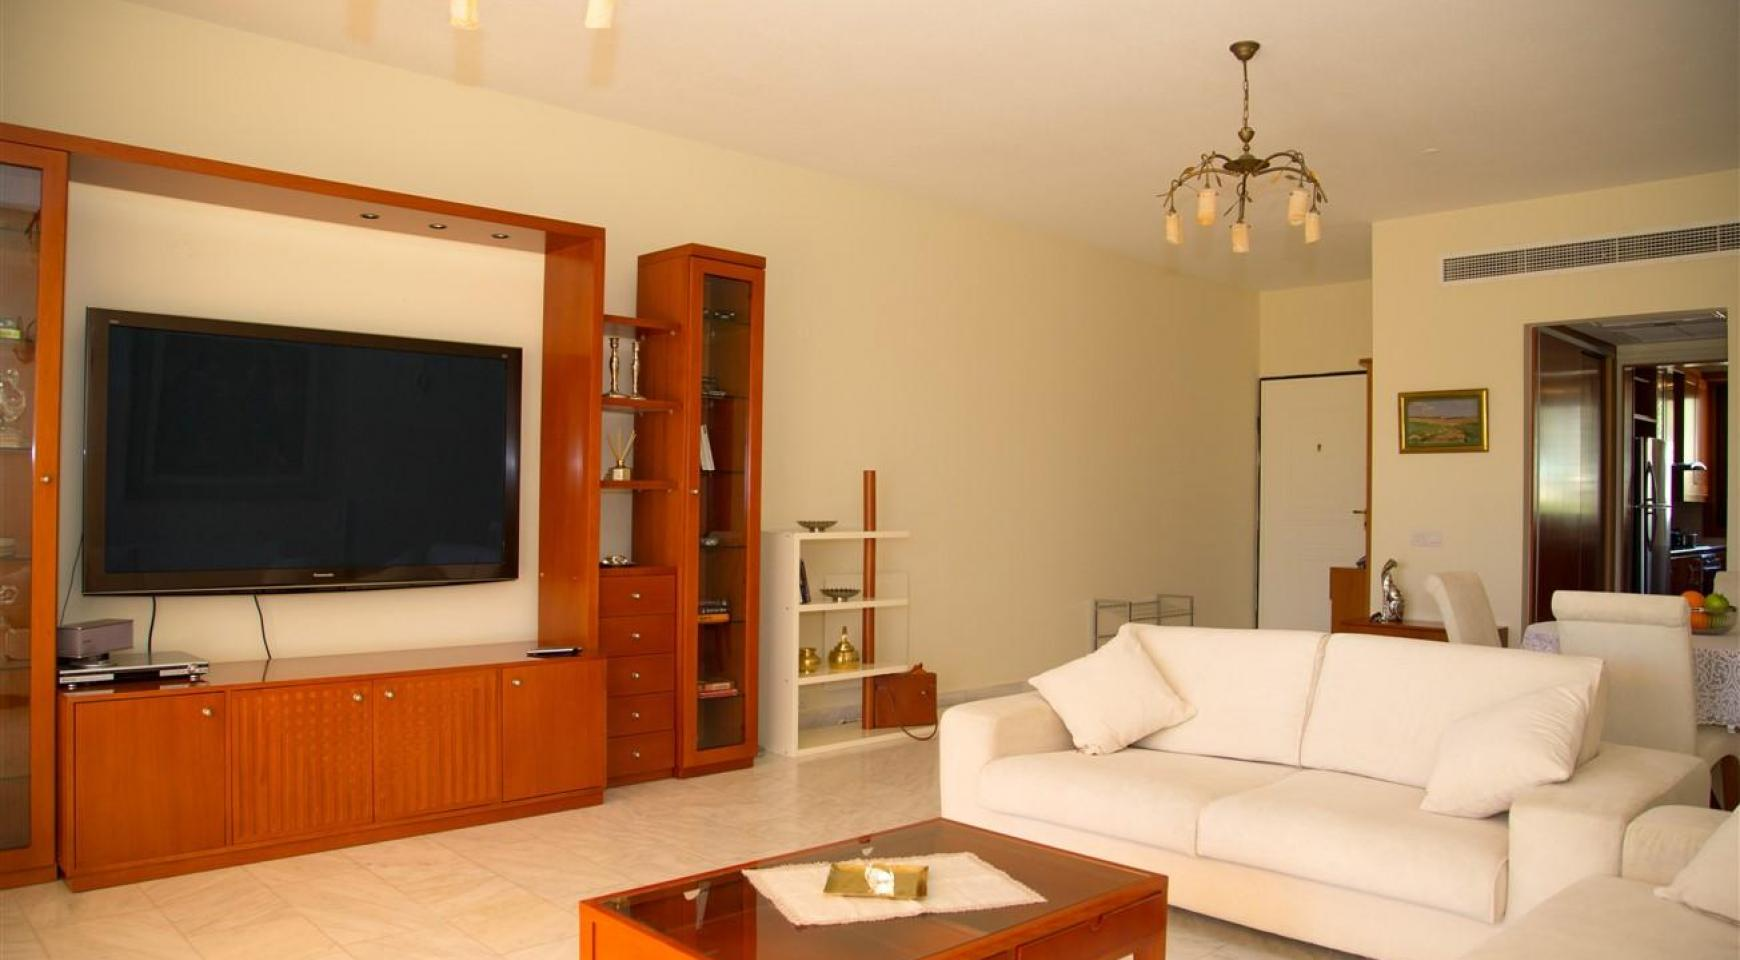 Cozy and Spacious 3 Bedroom Apartment Thera 102 by the Sea - 39